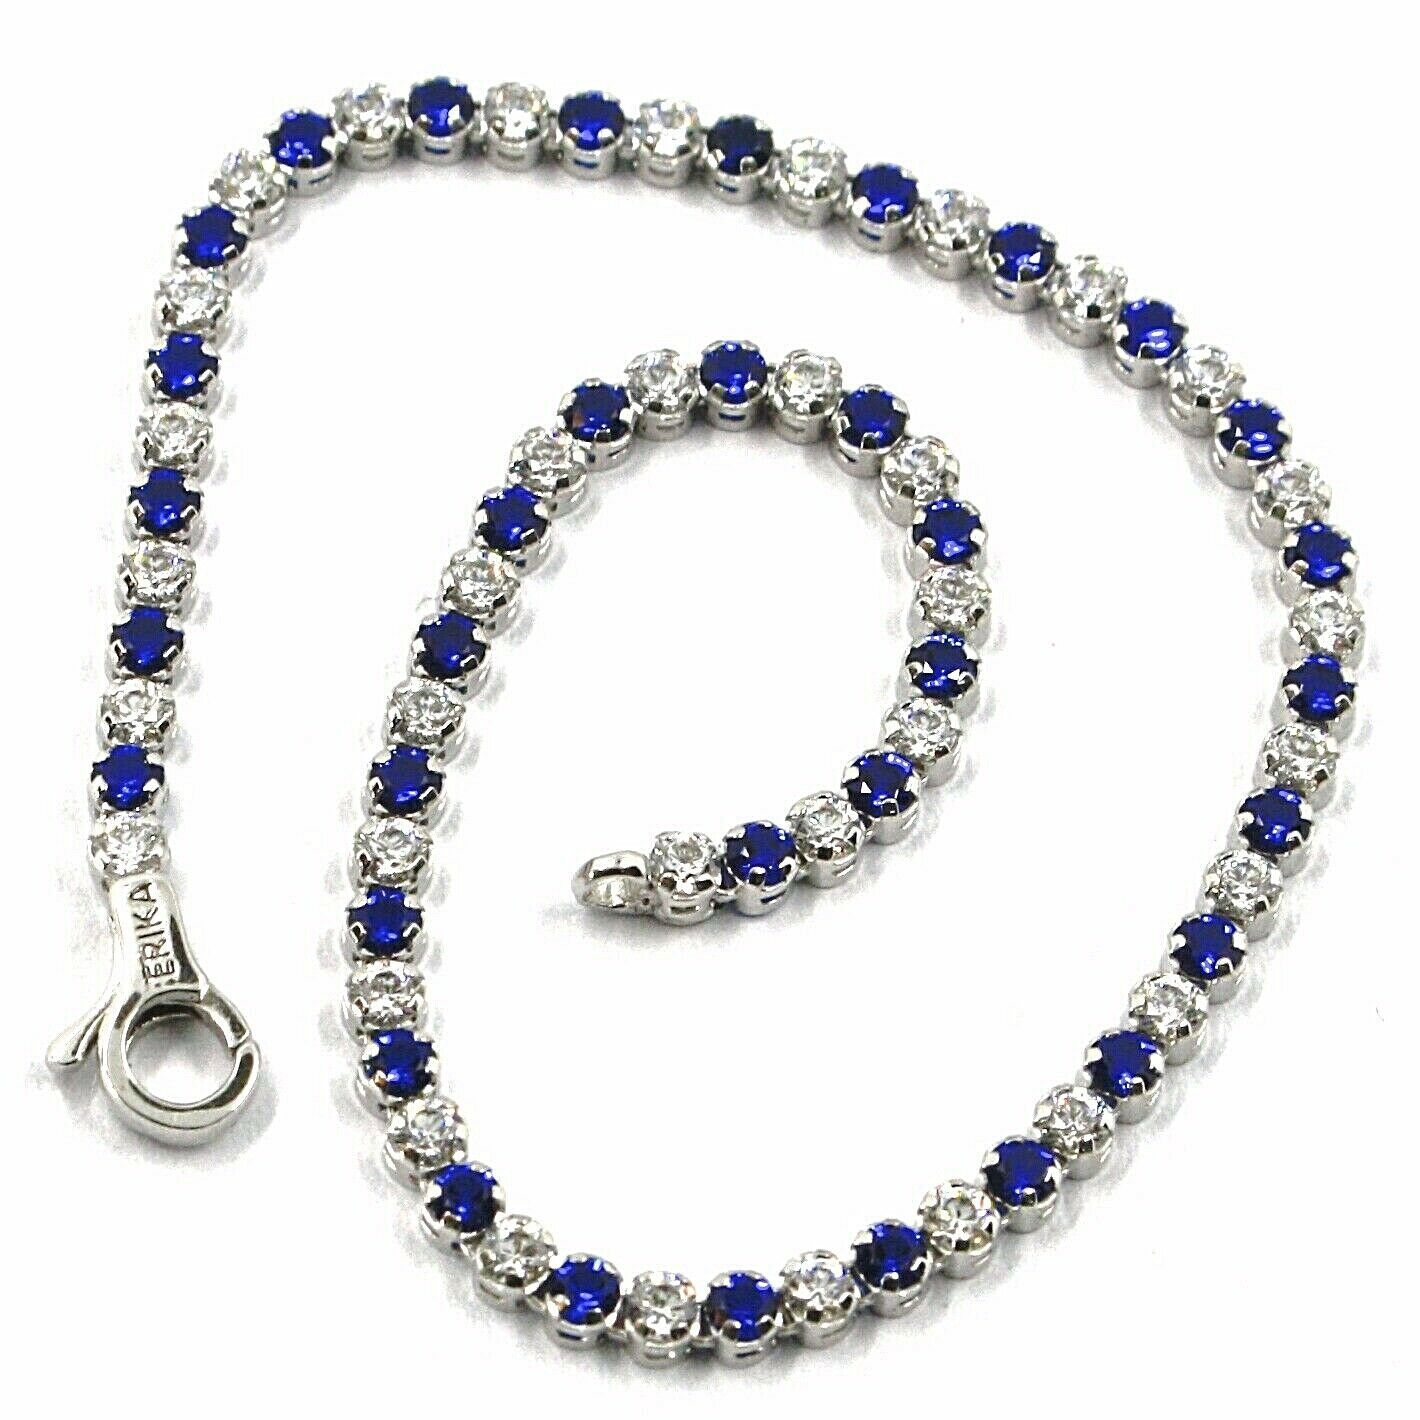 Primary image for 18K WHITE GOLD TENNIS BRACELET BLUE CUBIC ZIRCONIA 2.5mm LOBSTER CLASP CLOSURE